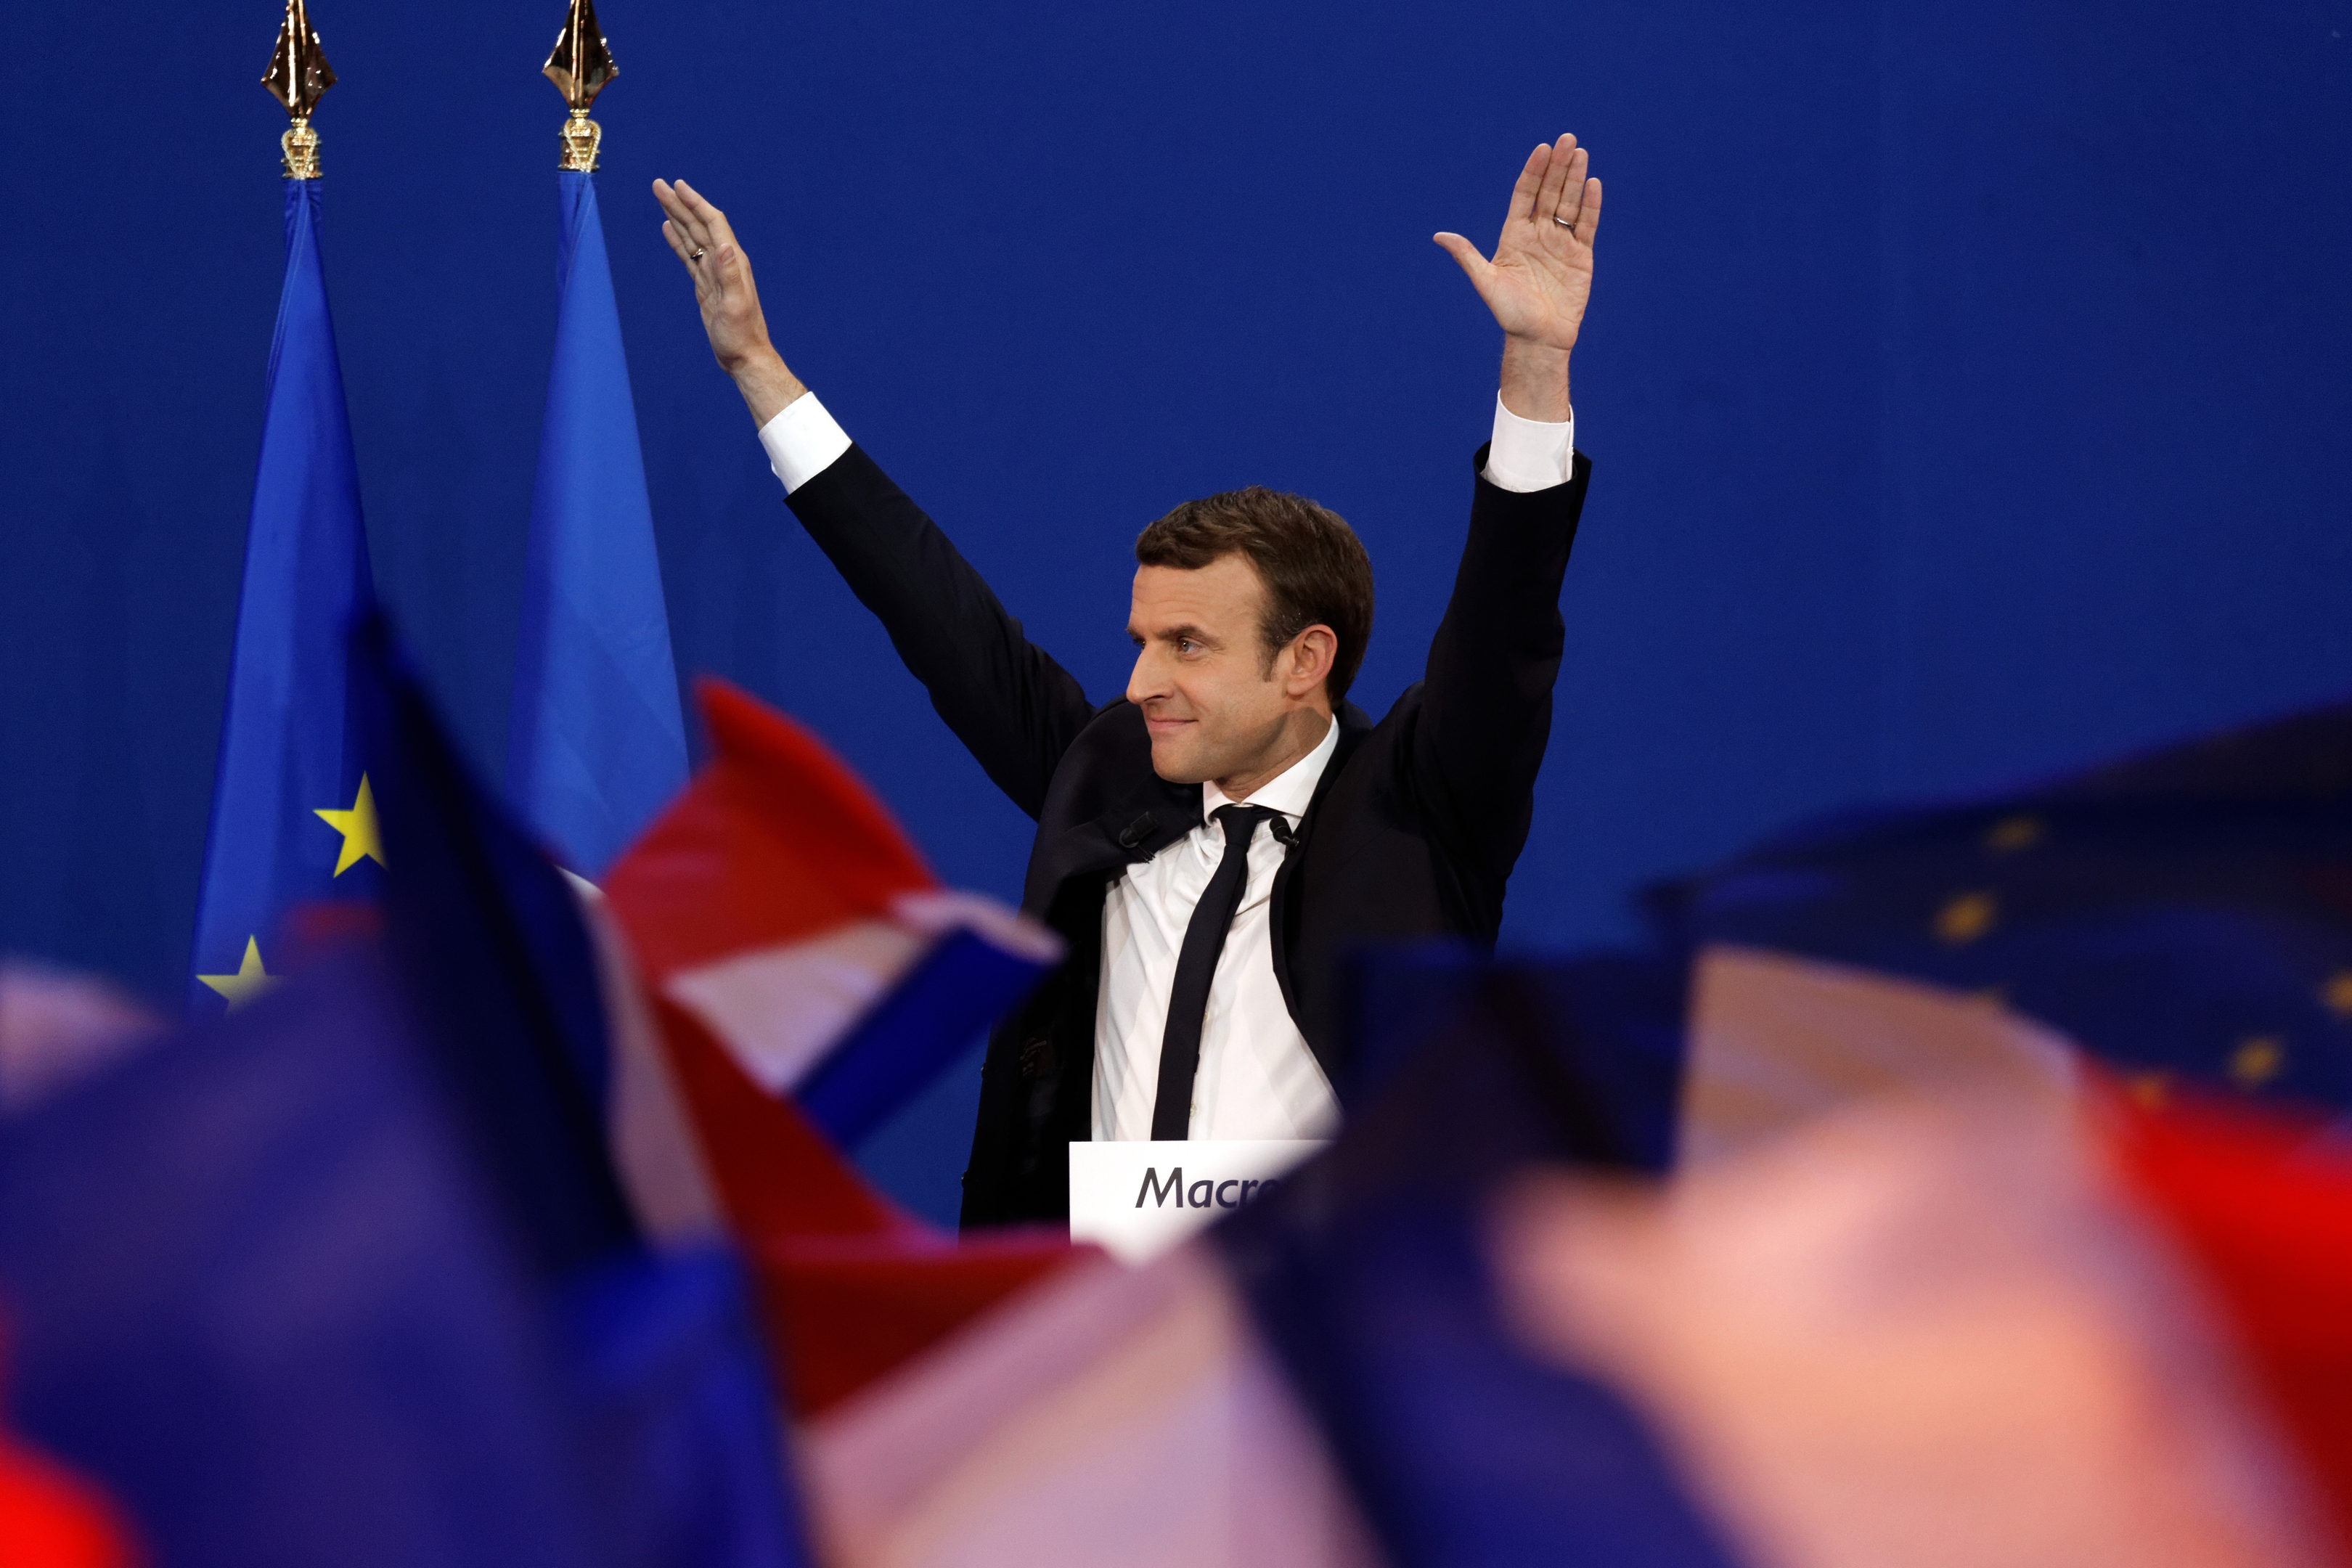 Founder and Leader of the political movement 'En Marche !' Emmanuel Macron